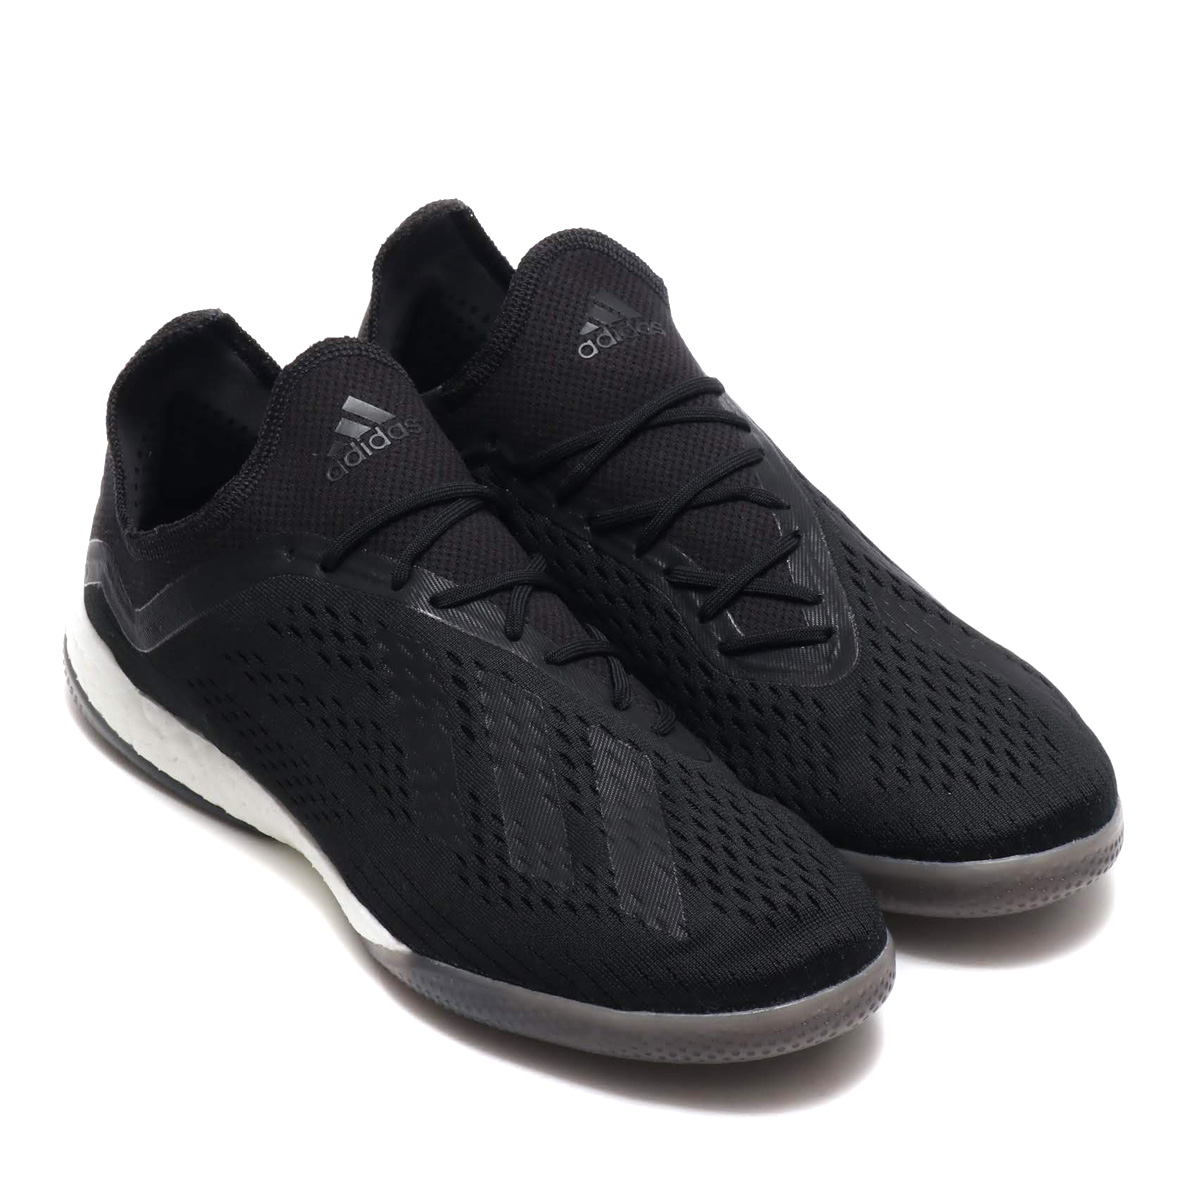 a1ac9f22f I pursue speed and the fashionableness in the street. The soccer shoes  which have the silhouette which is light comfort and Aiko Nic like a model  for the ...